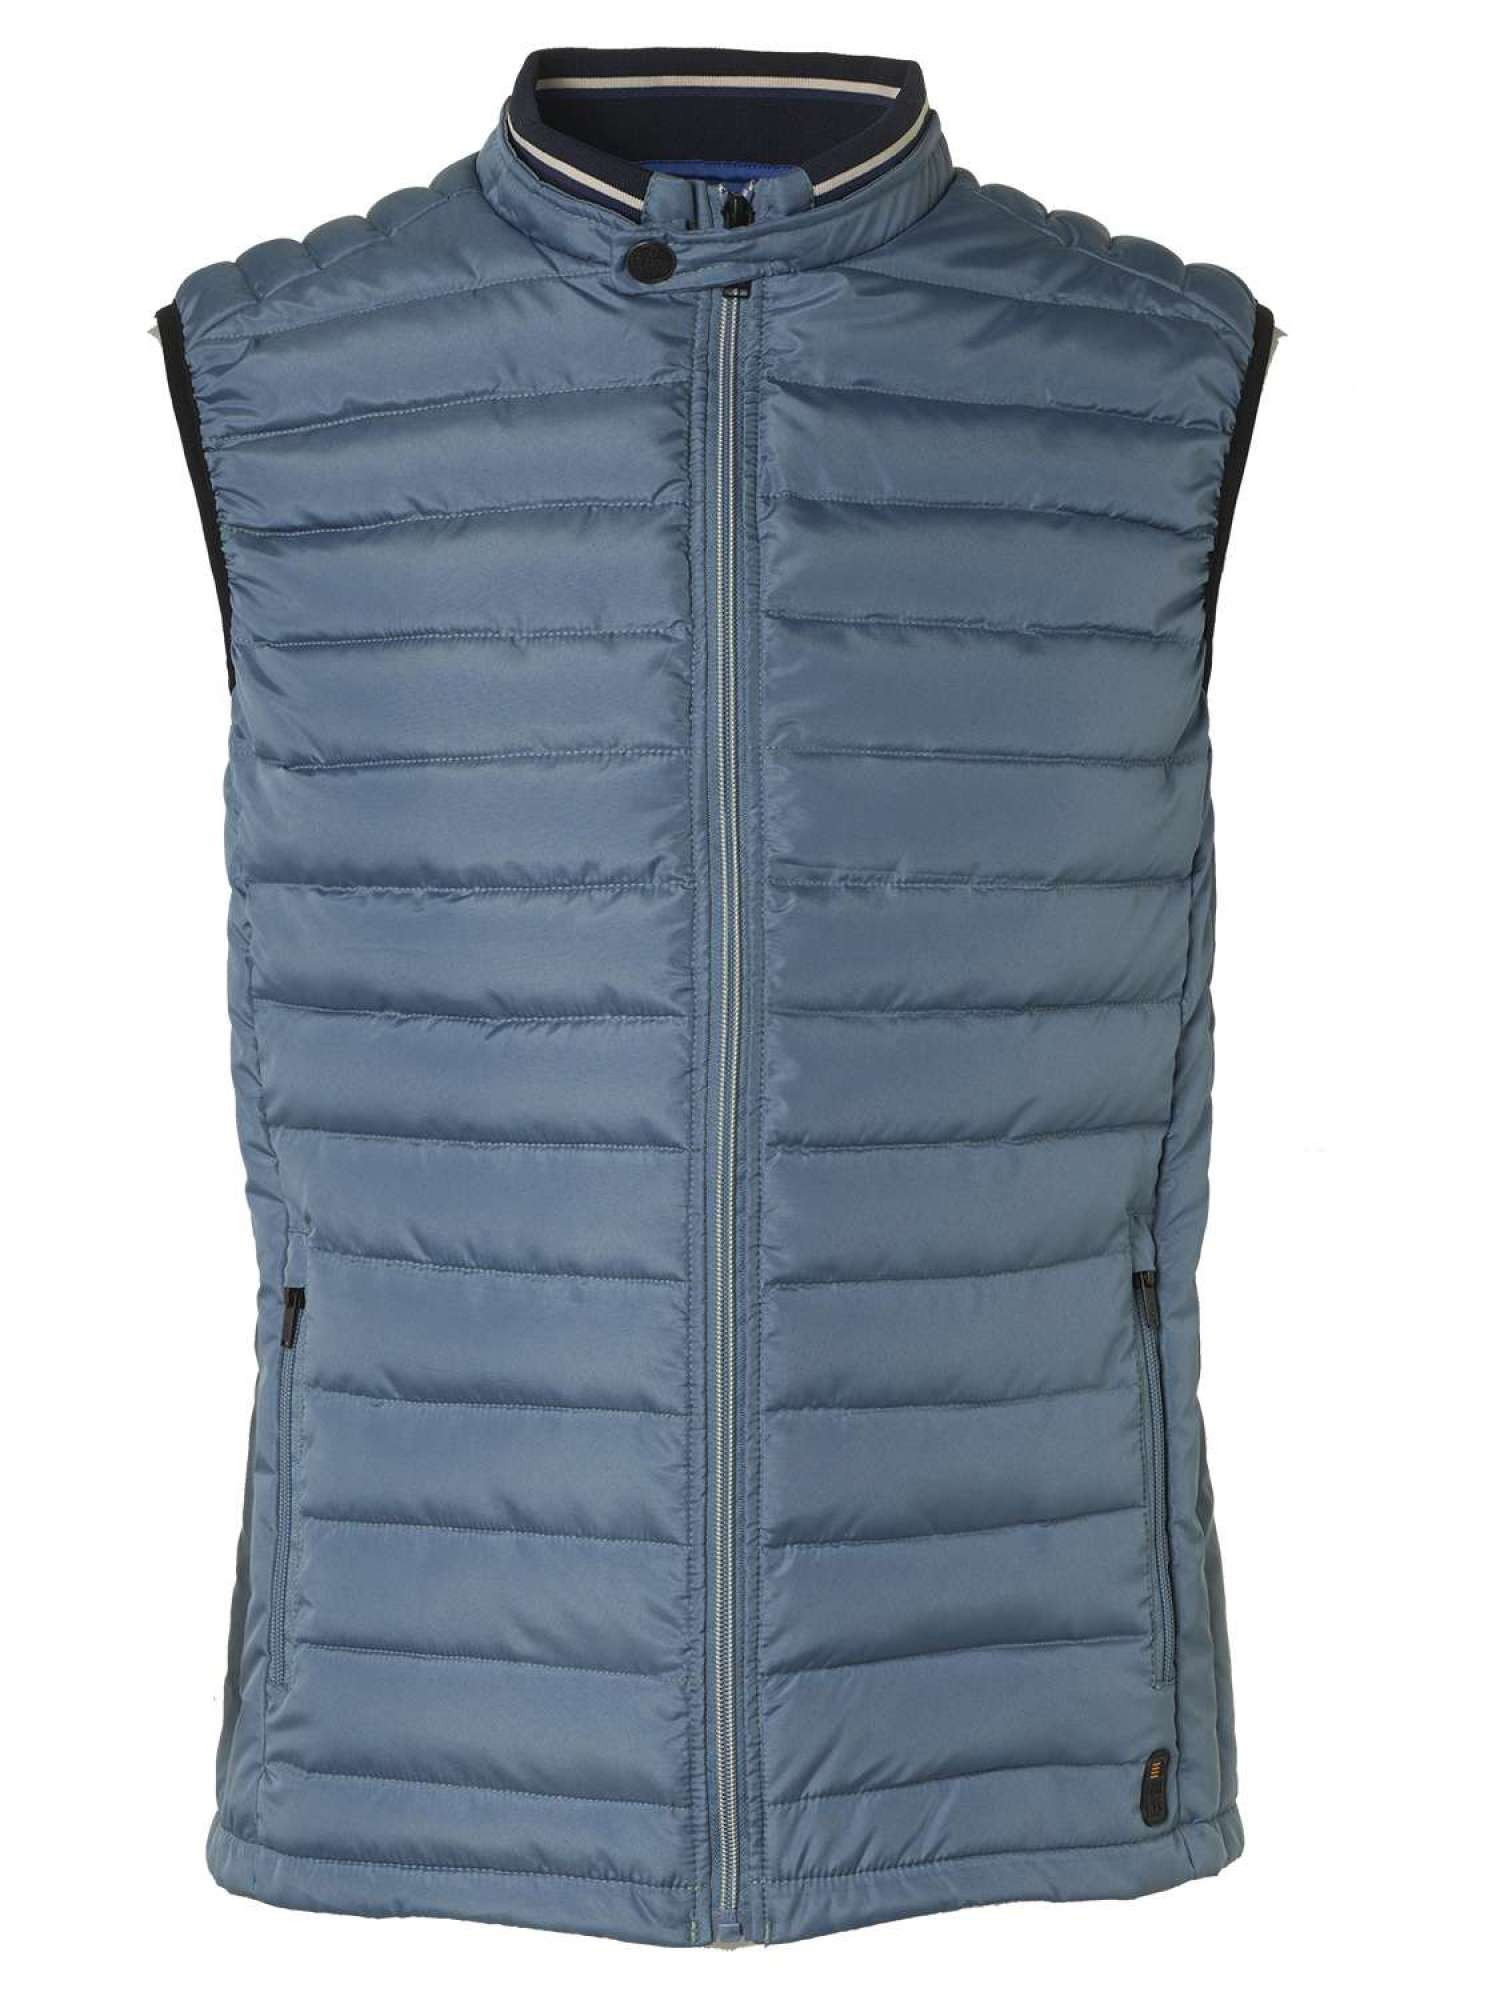 No Excess Bodywarmer,dull nylon, padding, fan steel